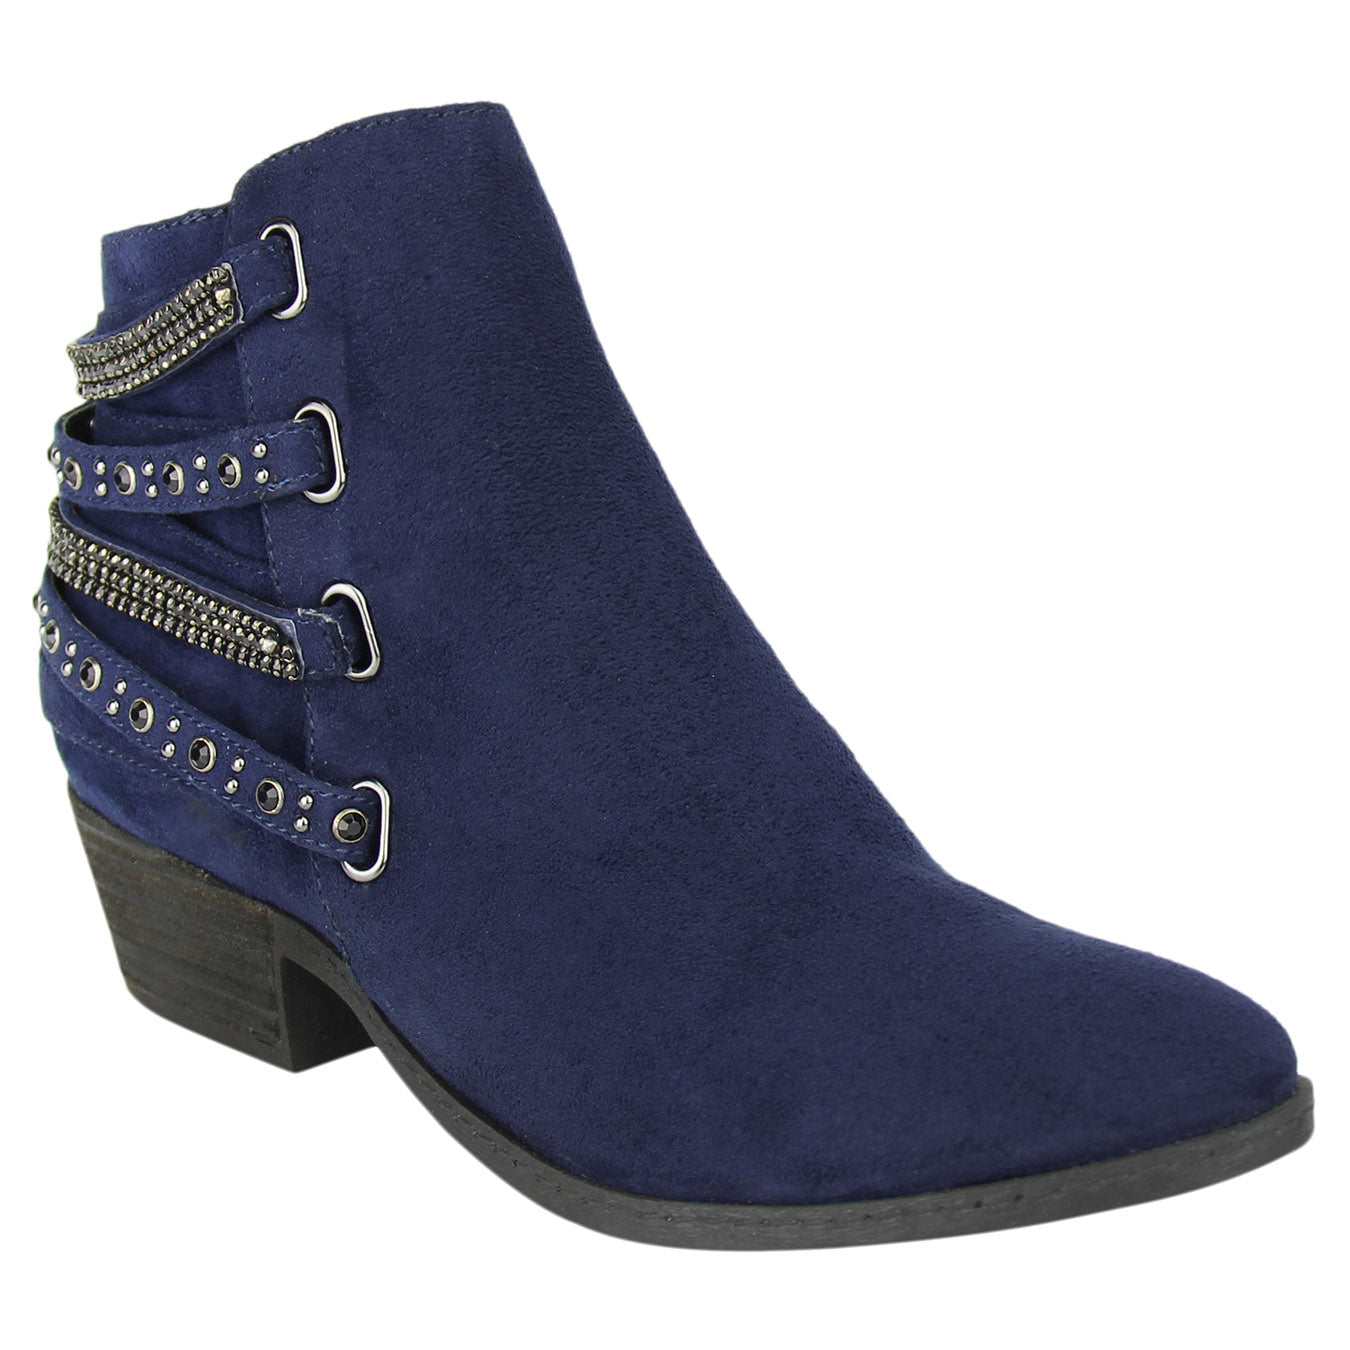 Not_Rated_bootie_navy_women's_heel_embellished_strappy-Lynn